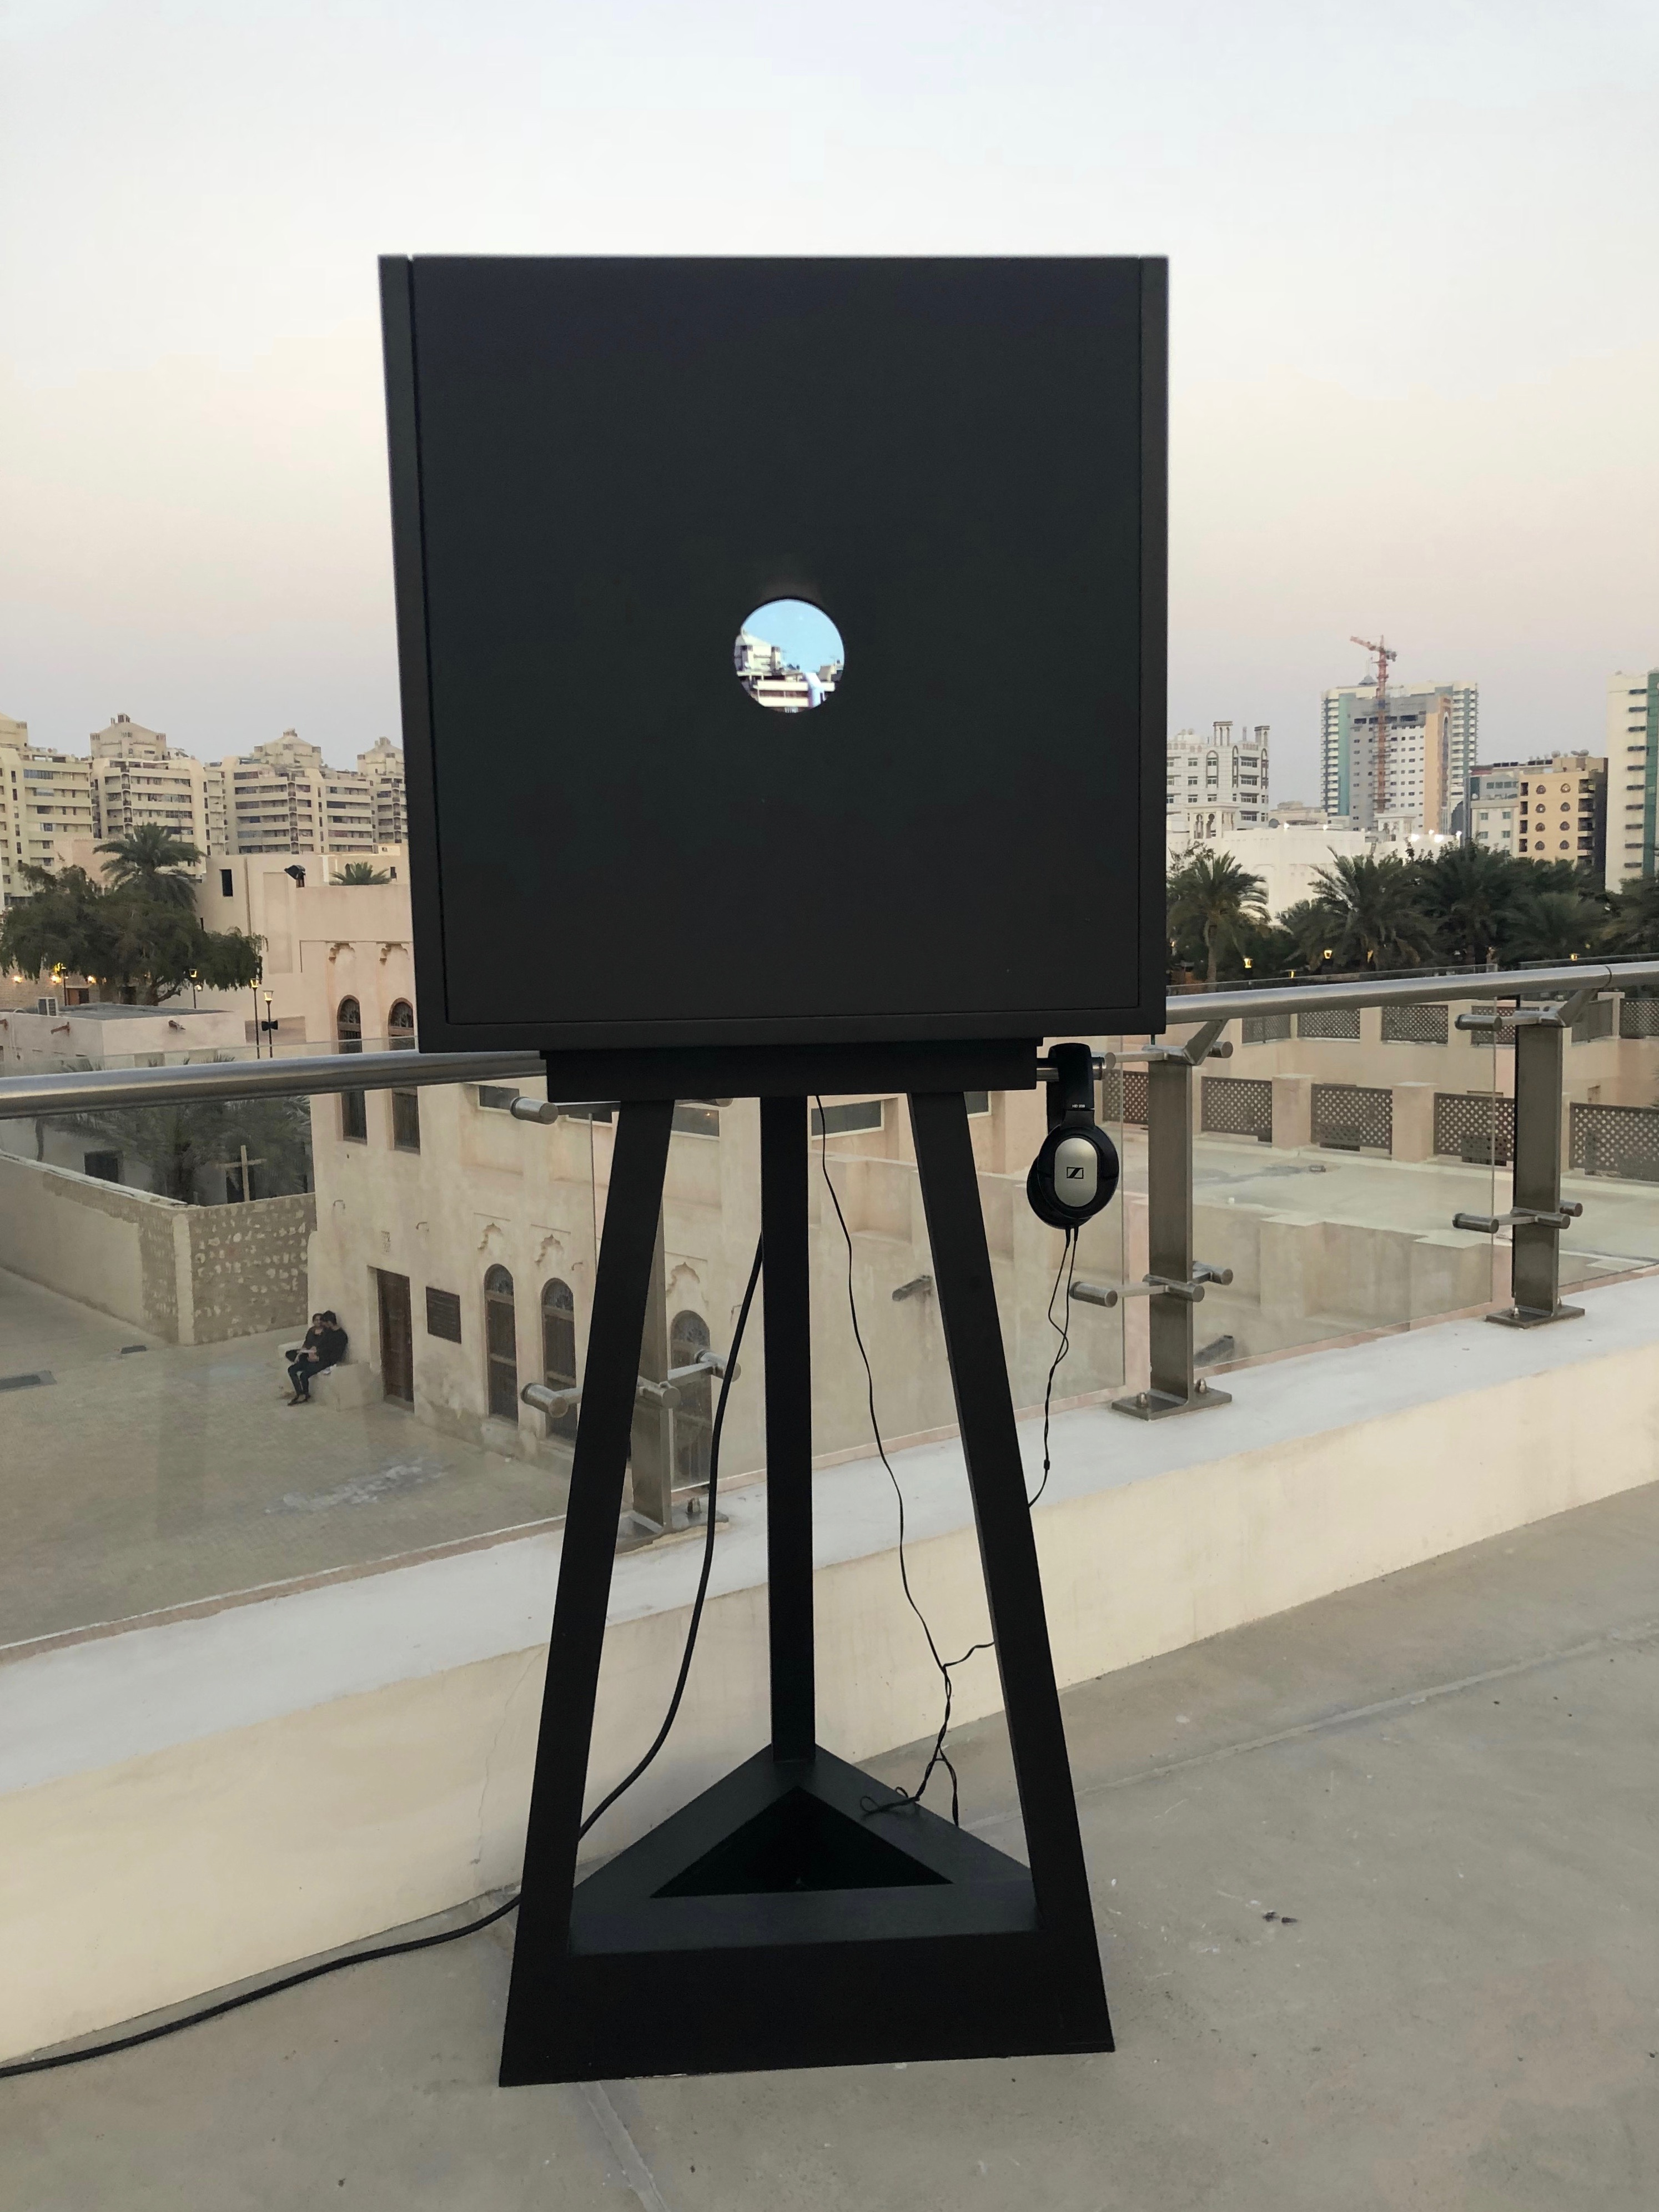 Alaa Edriss, The Black Boxes of Observational Activity, 2019. Photo CT